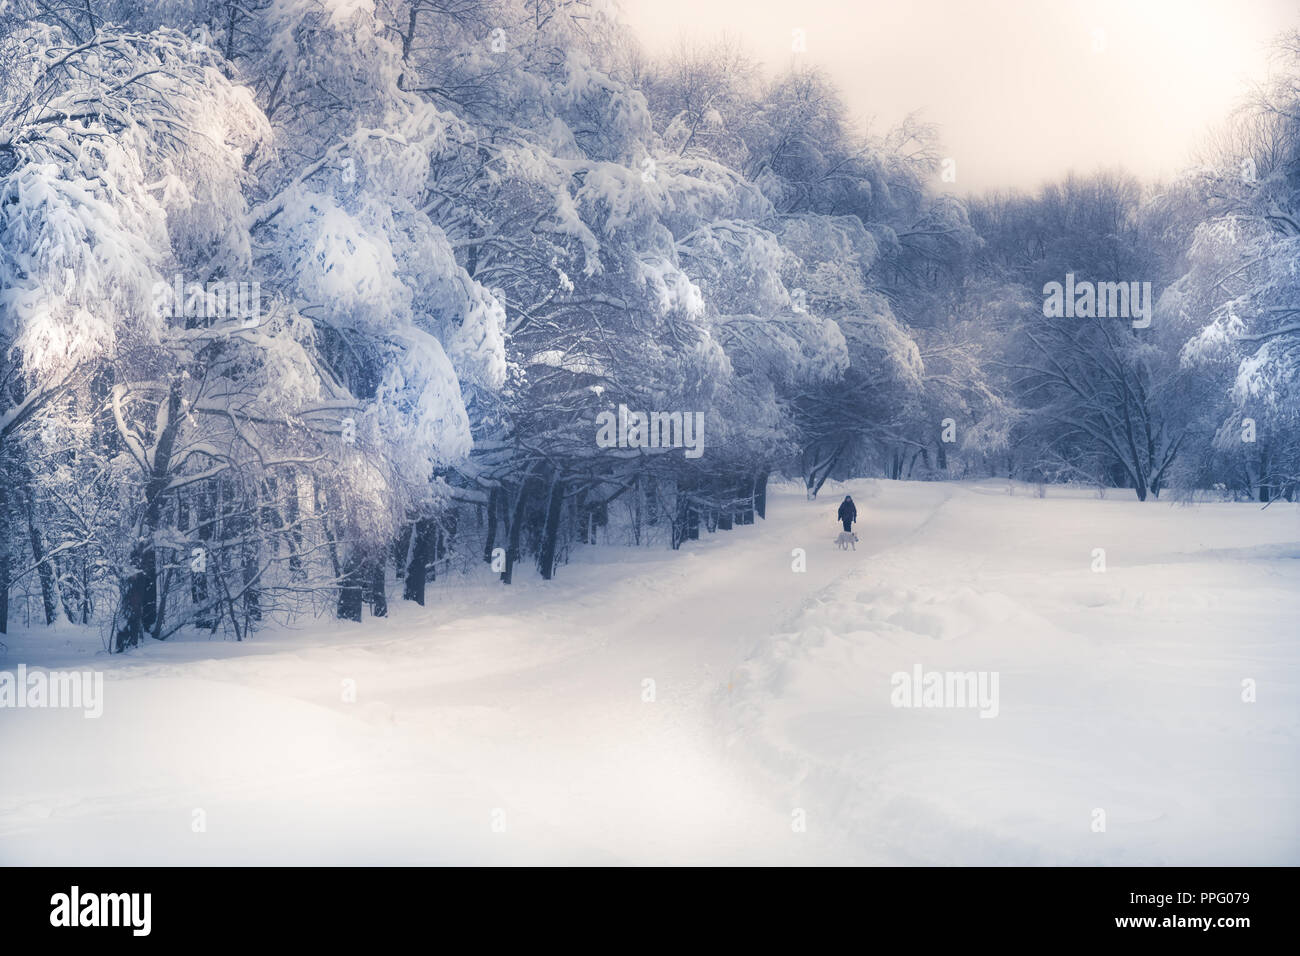 Lonely silhouette walking on snowy road in winter season in forest park snowy trees in soft blue purple colors - Stock Image